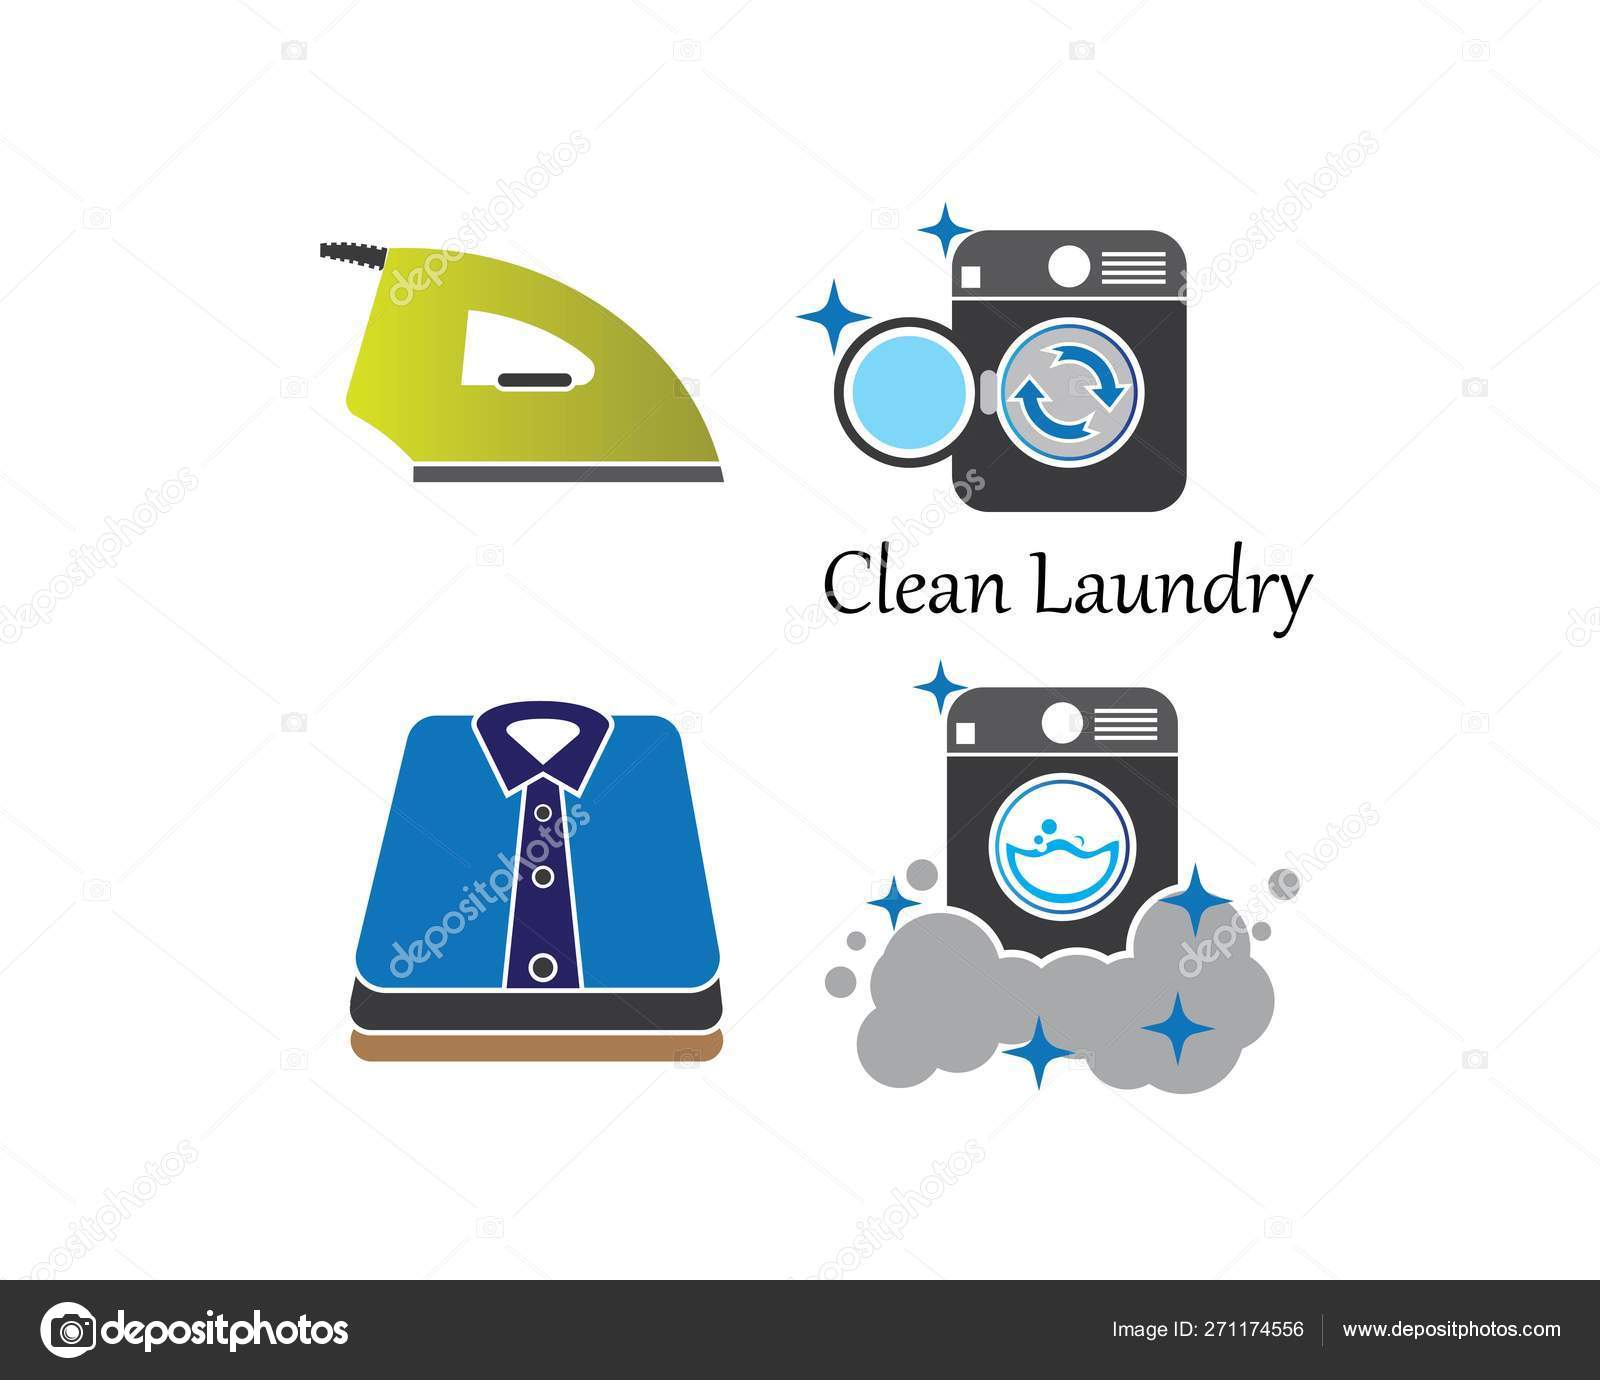 laundry logo vector icon template stock vector c sangidan 271174556 laundry logo vector icon template stock vector c sangidan 271174556